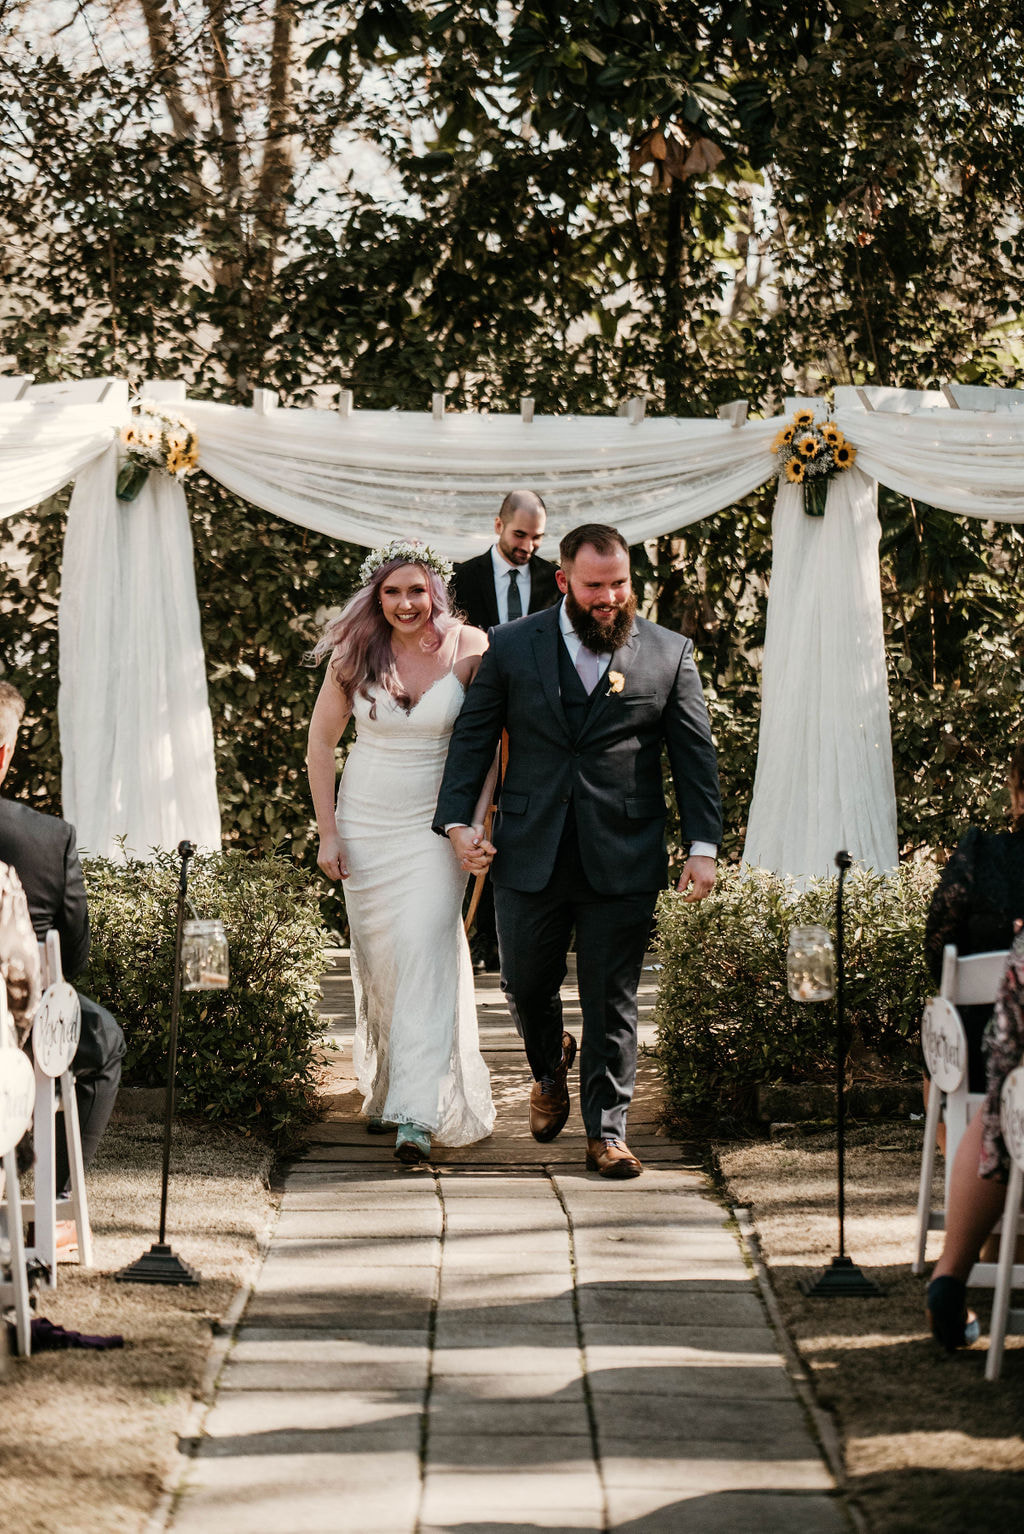 newlyweds walking down aisle after ceremony